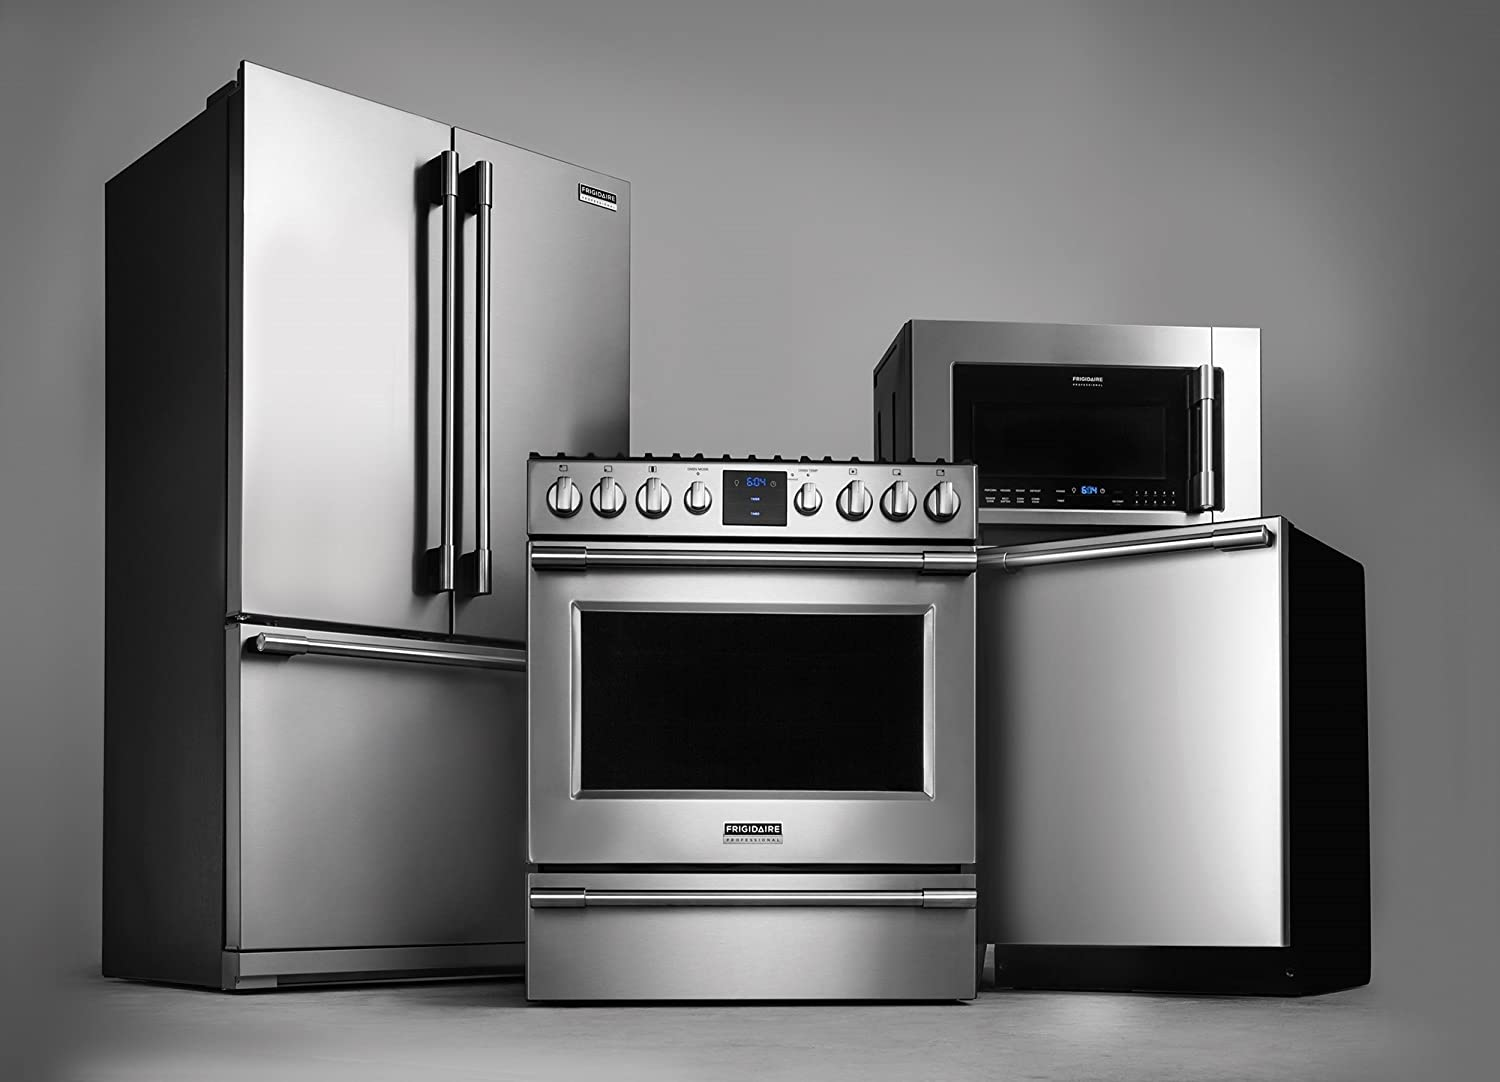 Frigidaire professional kitchen appliance packages besto - Kitchen appliances packages ...